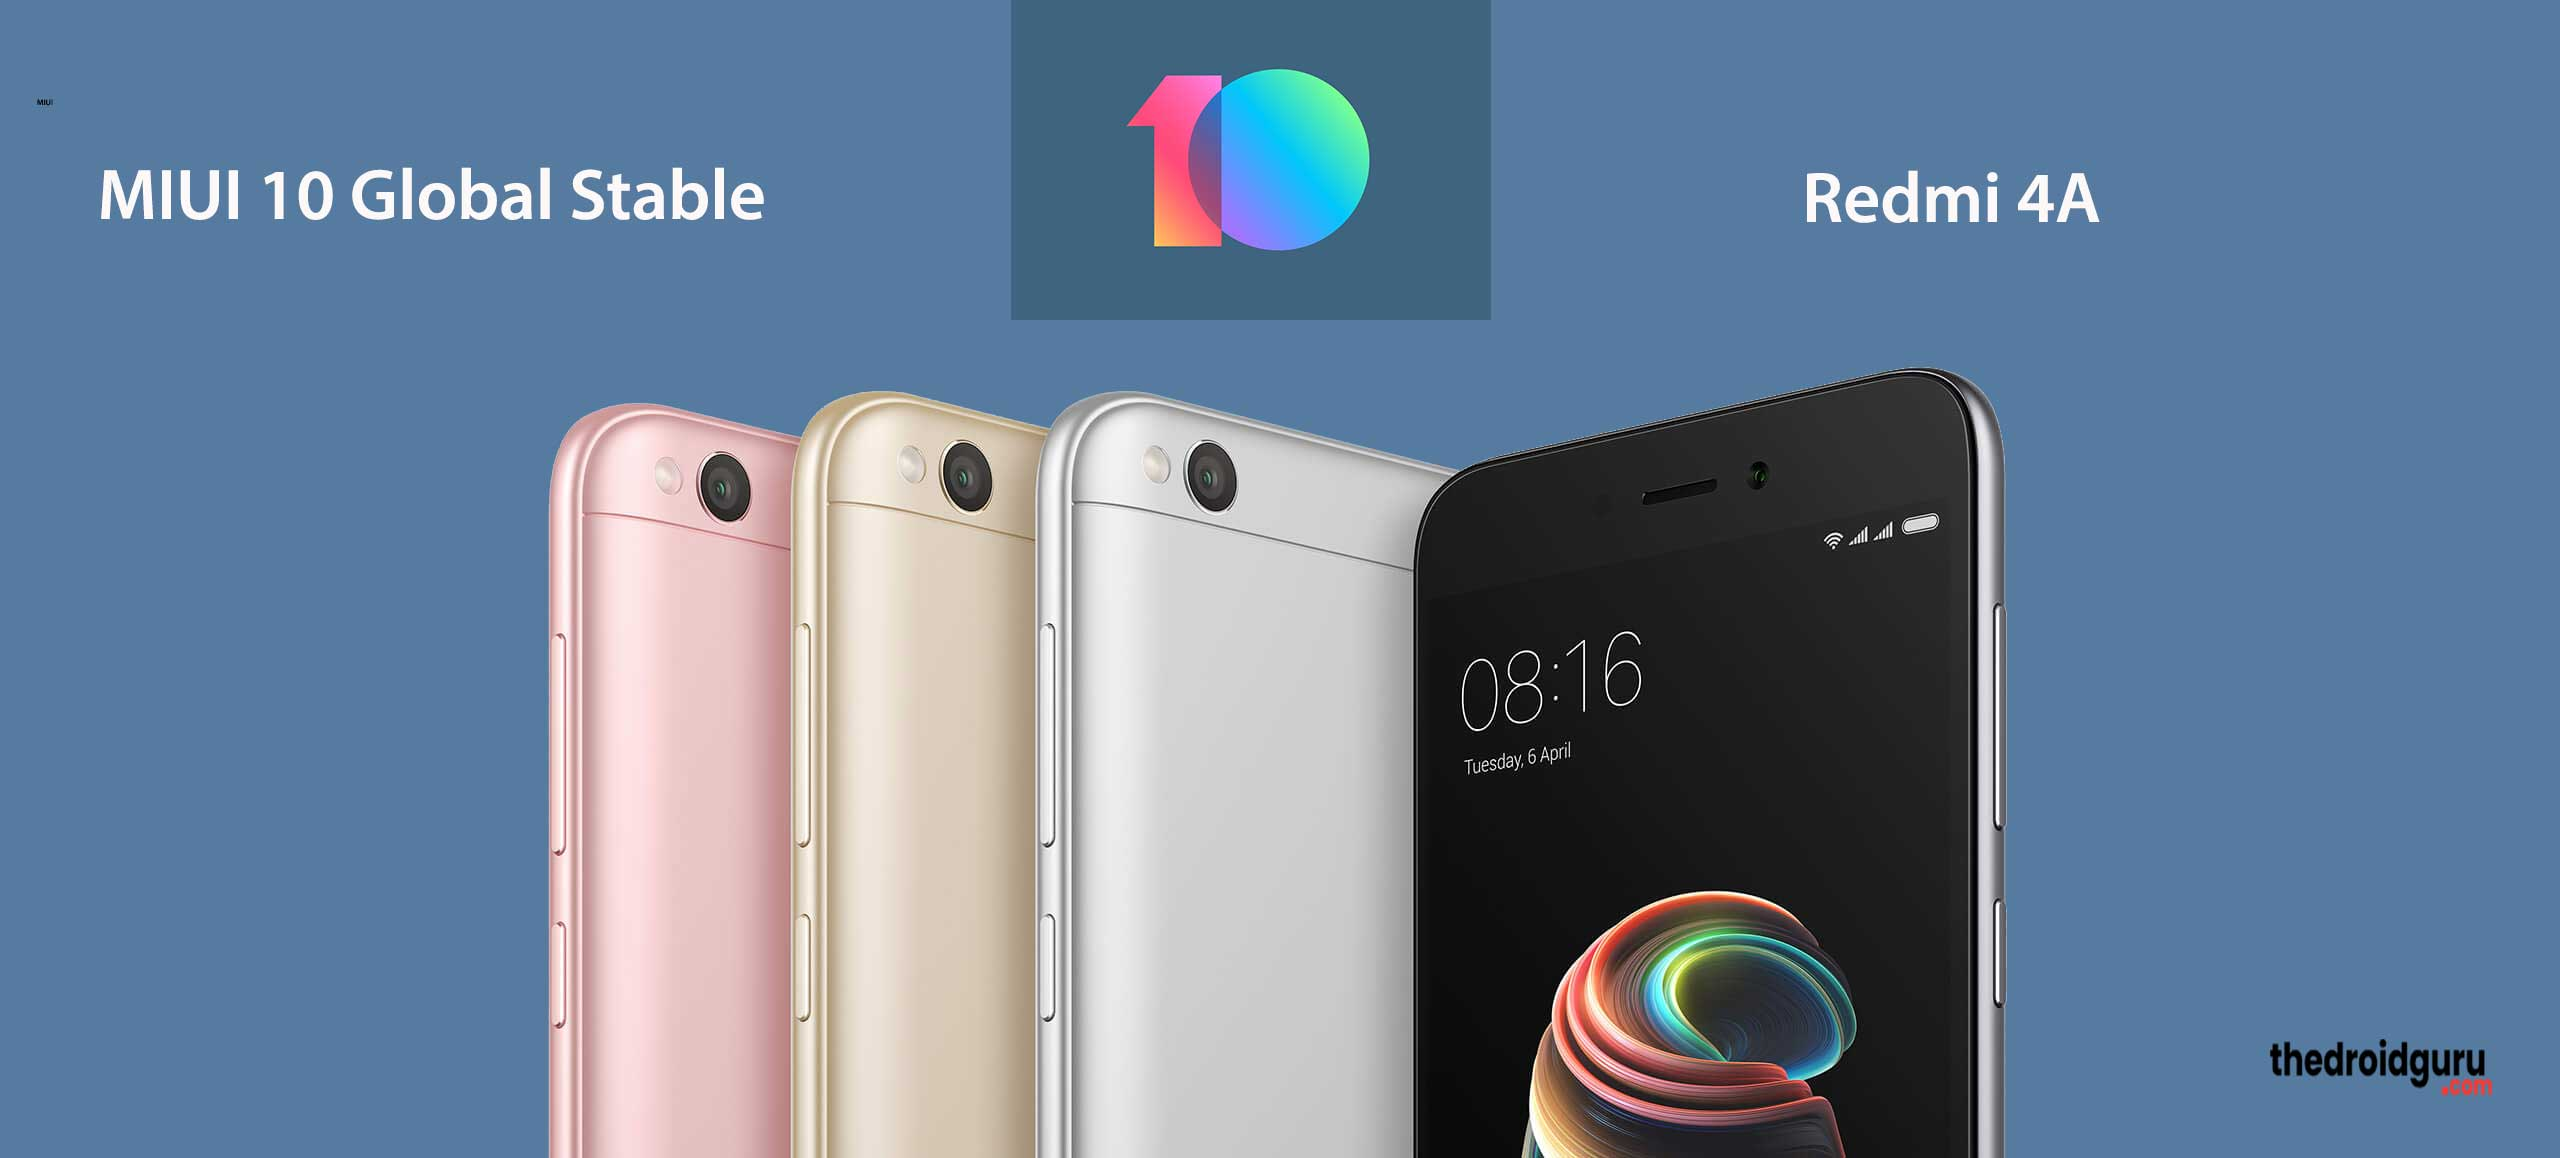 download miui 10 global stable for redmi 4a